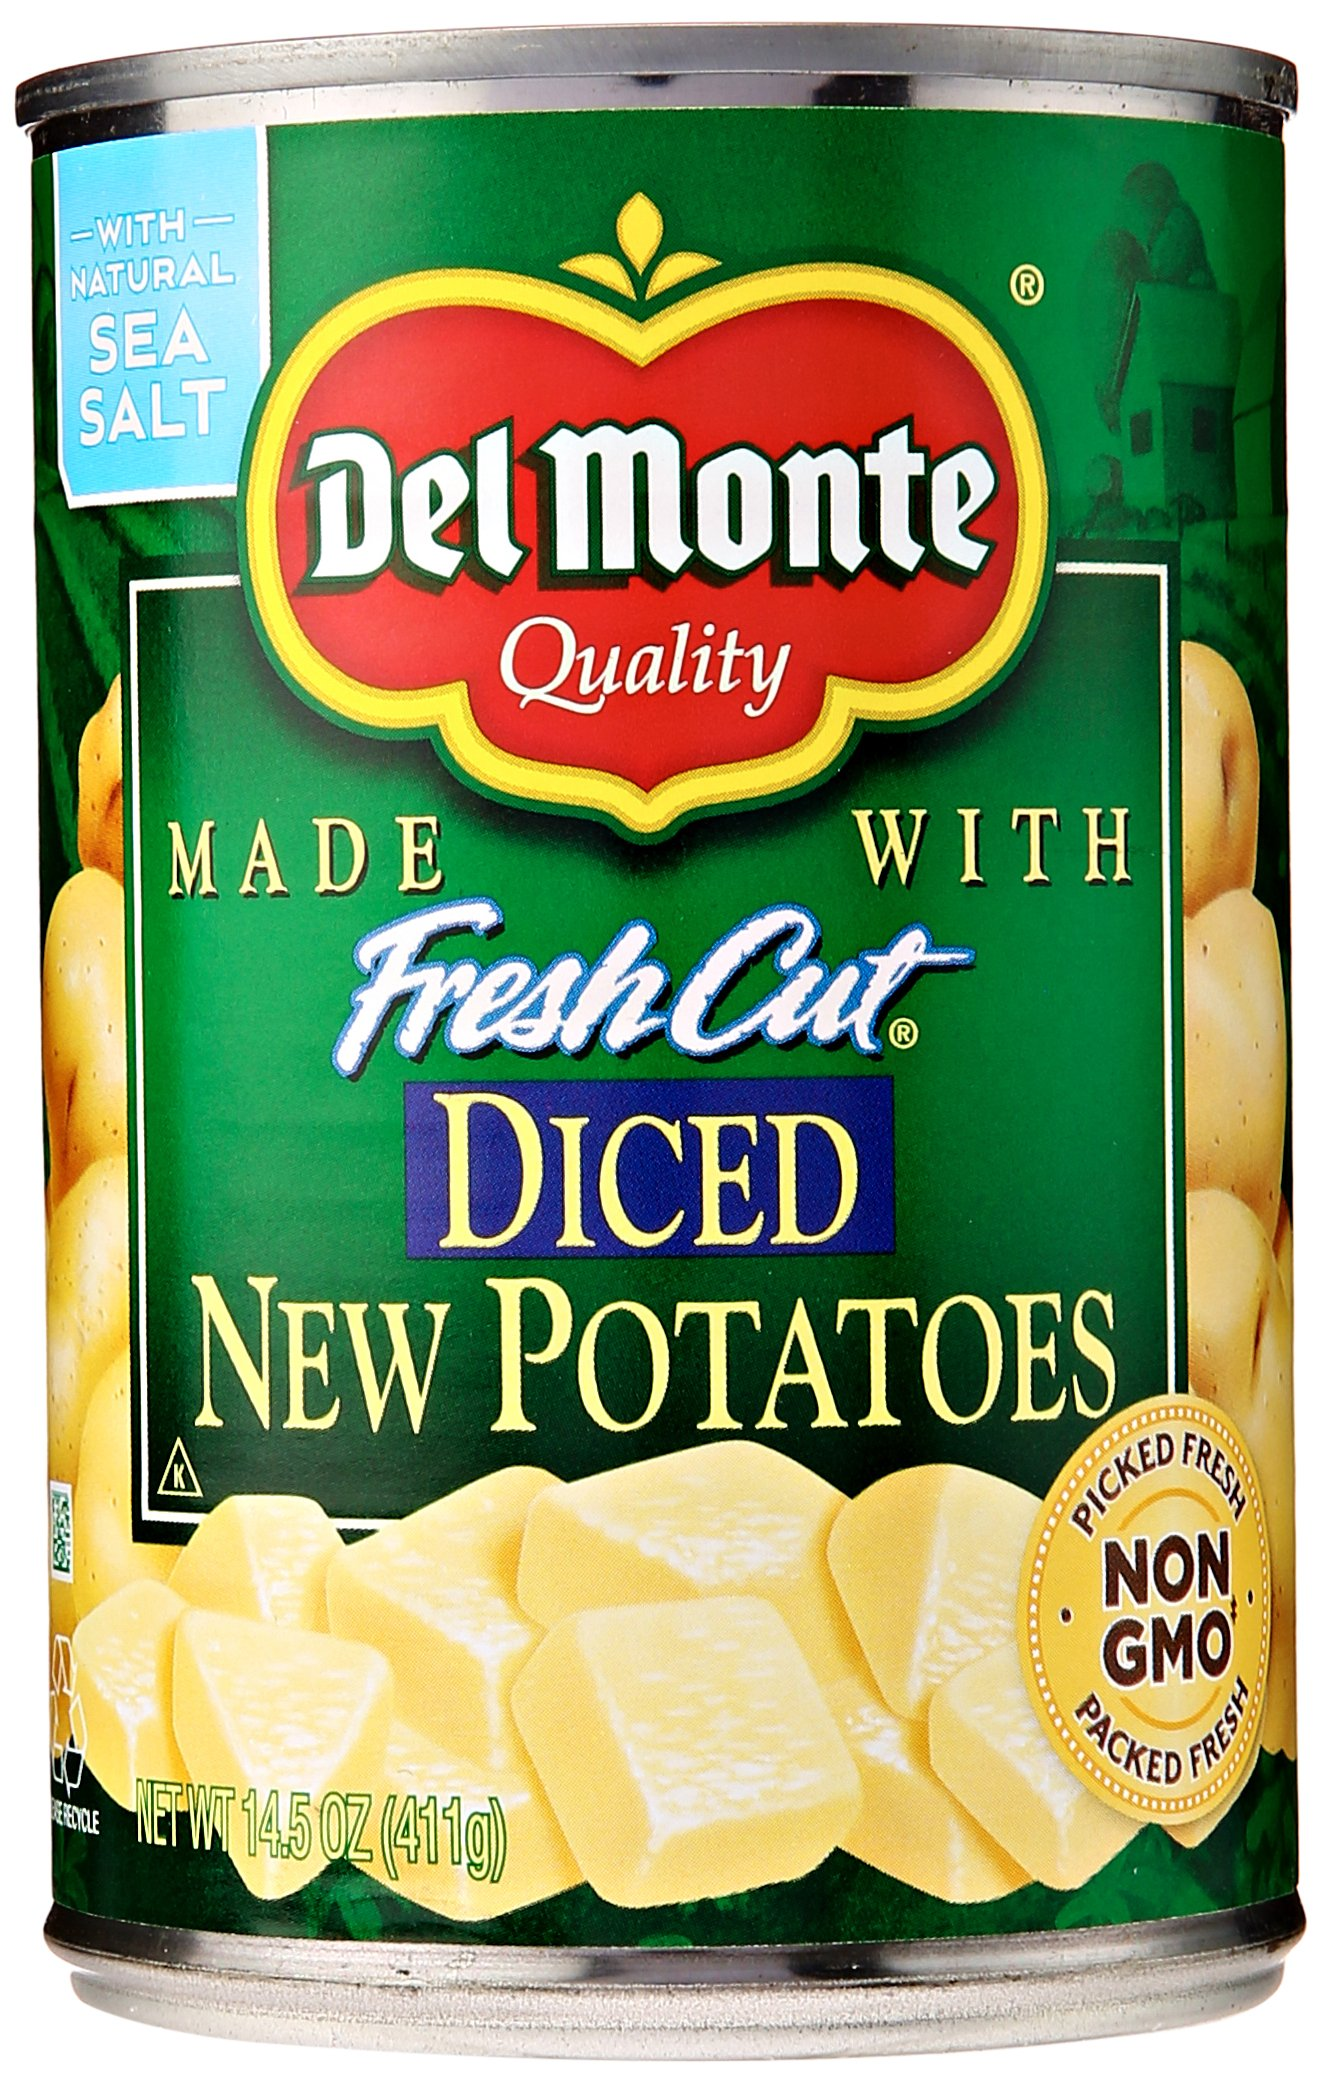 Del Monte Canned Fresh Cut Diced New Potatoes, 14.5-Ounce